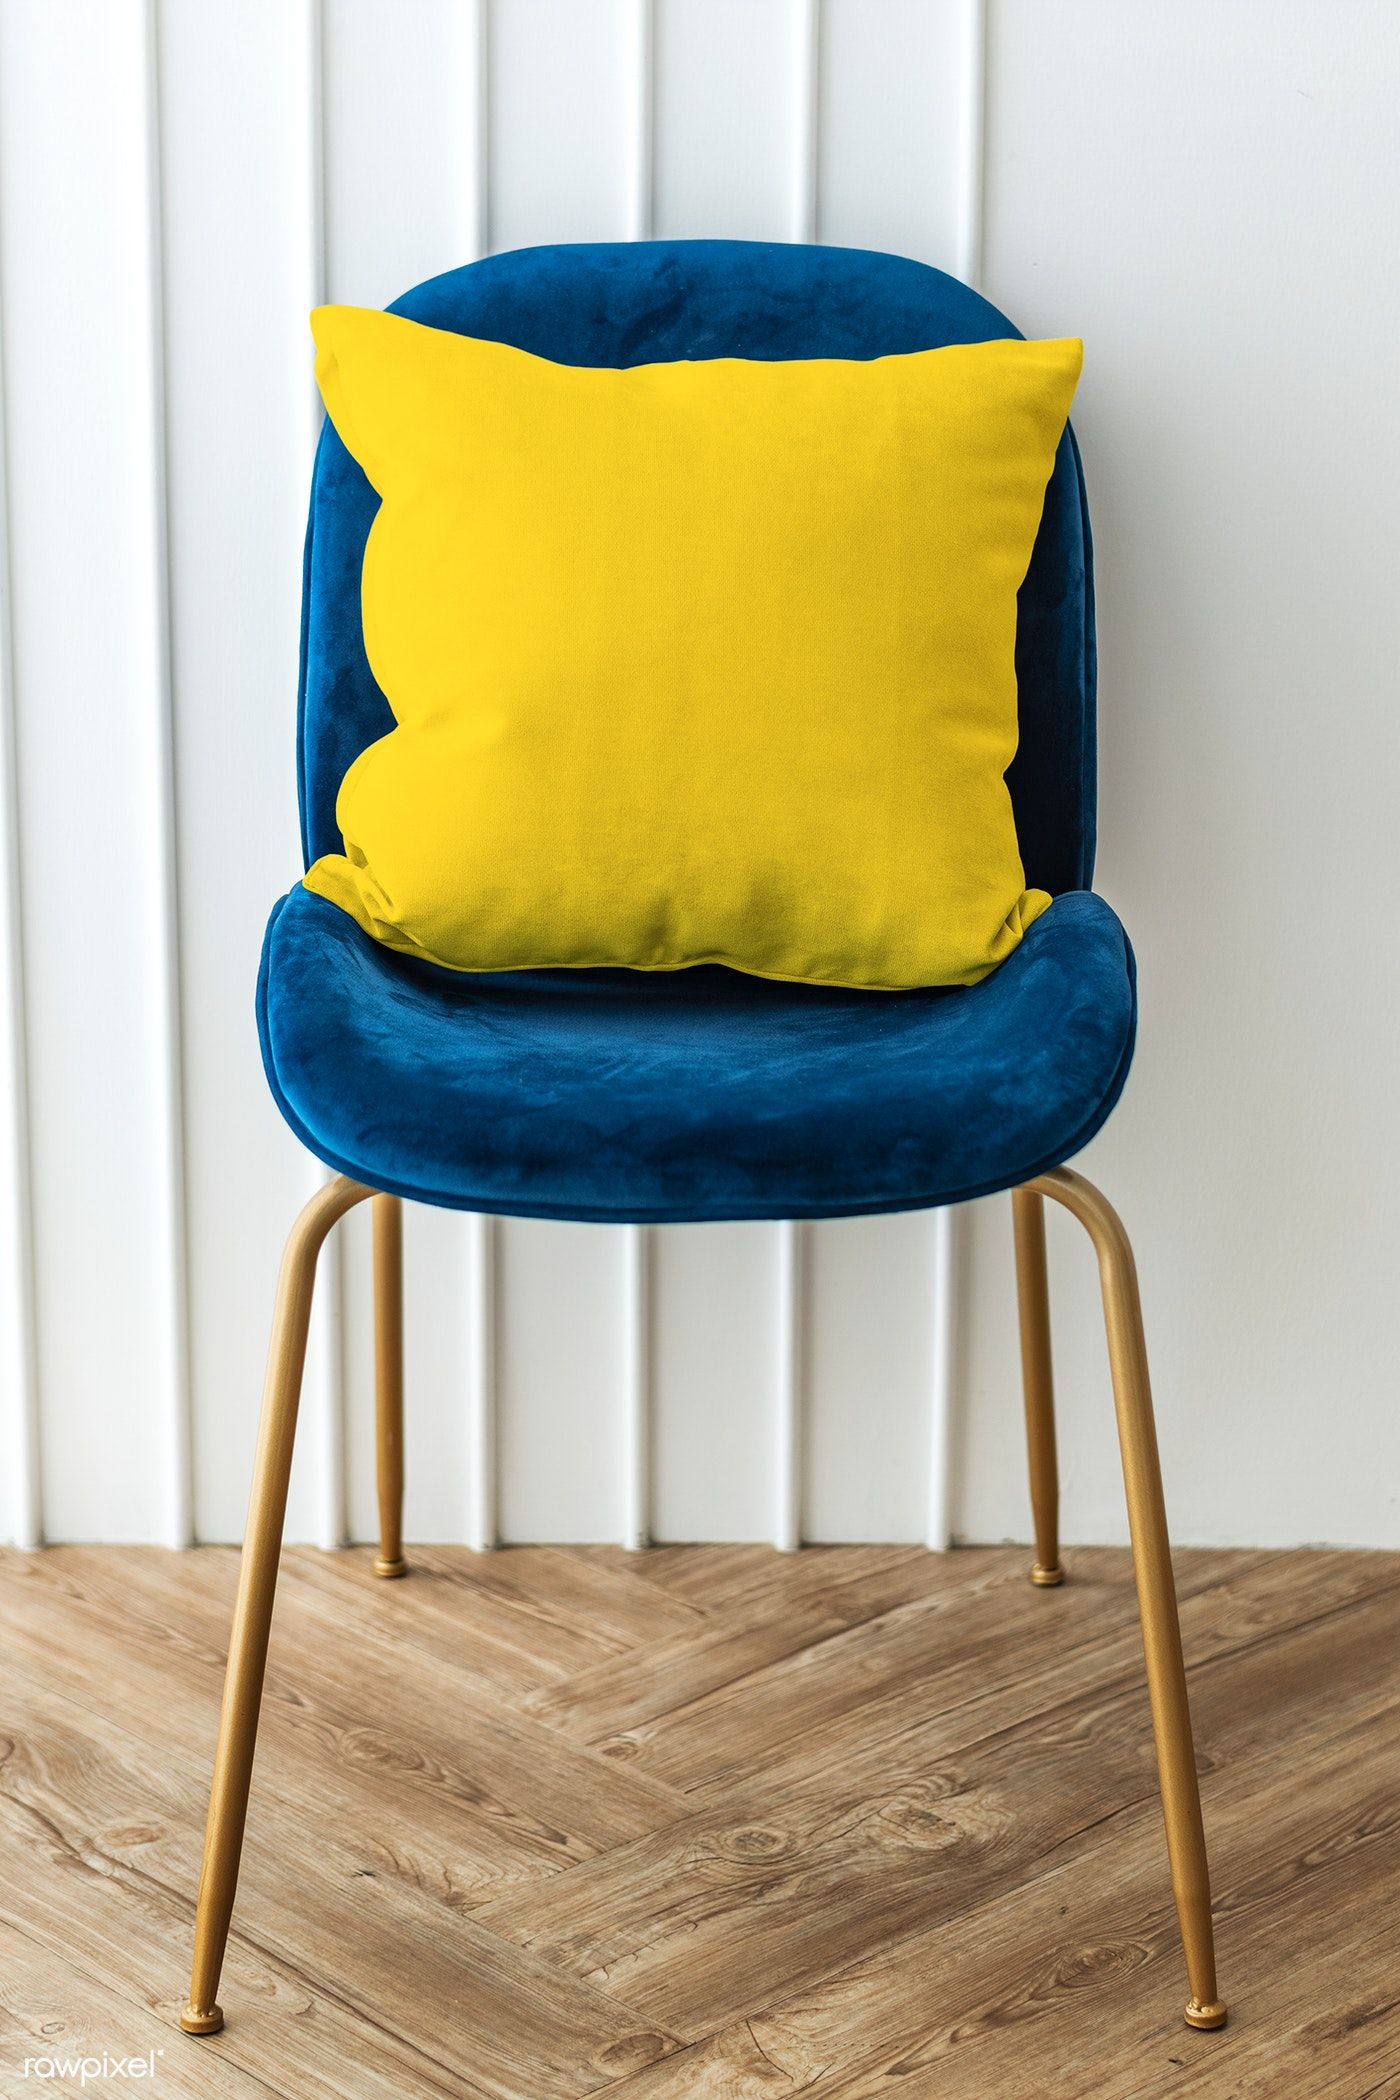 Yellow Cushion On A Blue Velvet Chair Premium Image By Rawpixel Com Teddy Rawpixel Photography Photos Blue Velvet Chairs Velvet Chair Yellow Cushions